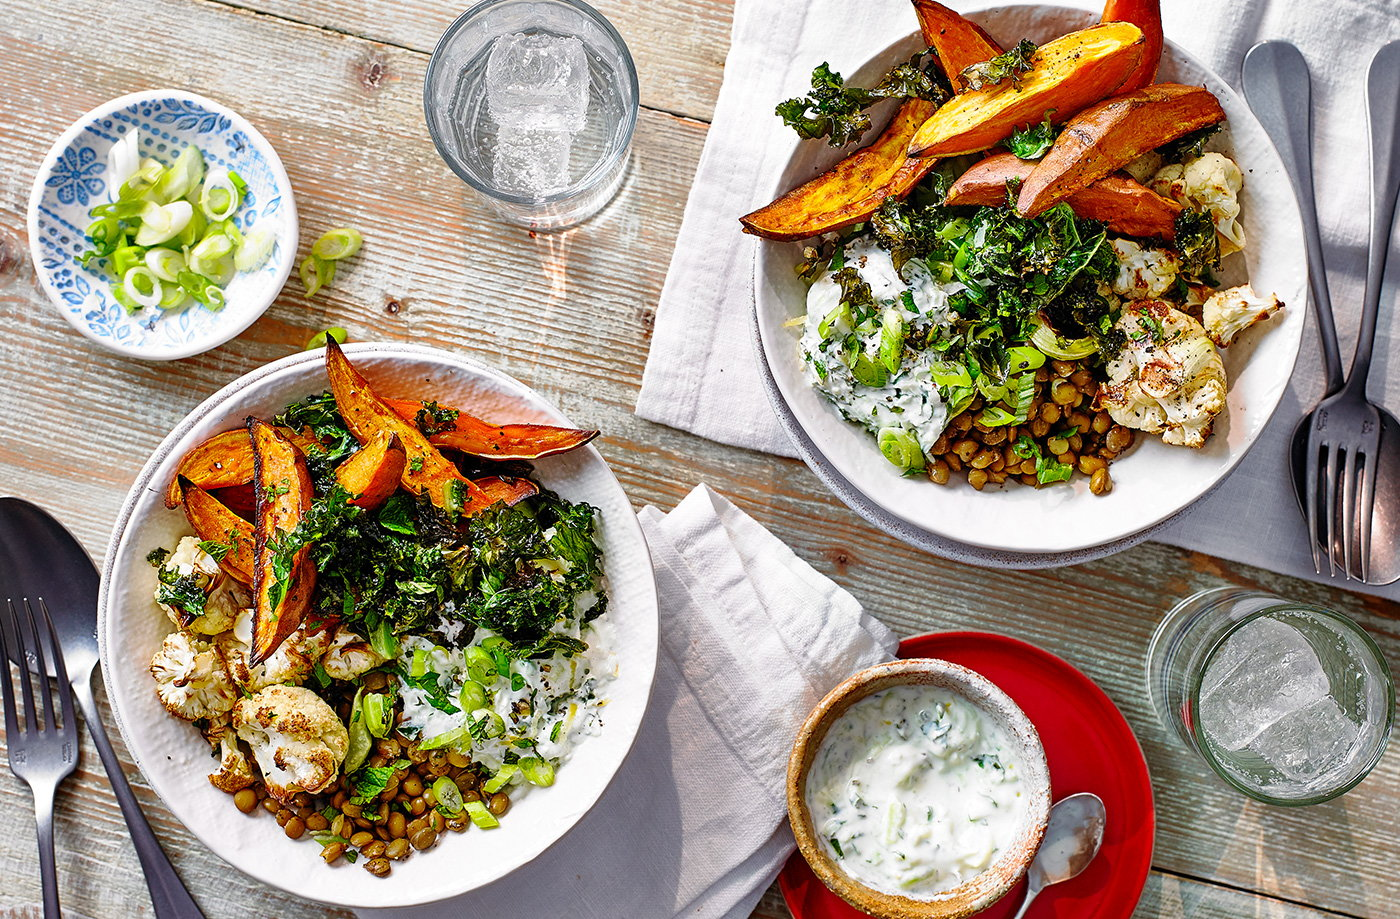 Roasted veg and lentil salad bowl recipe